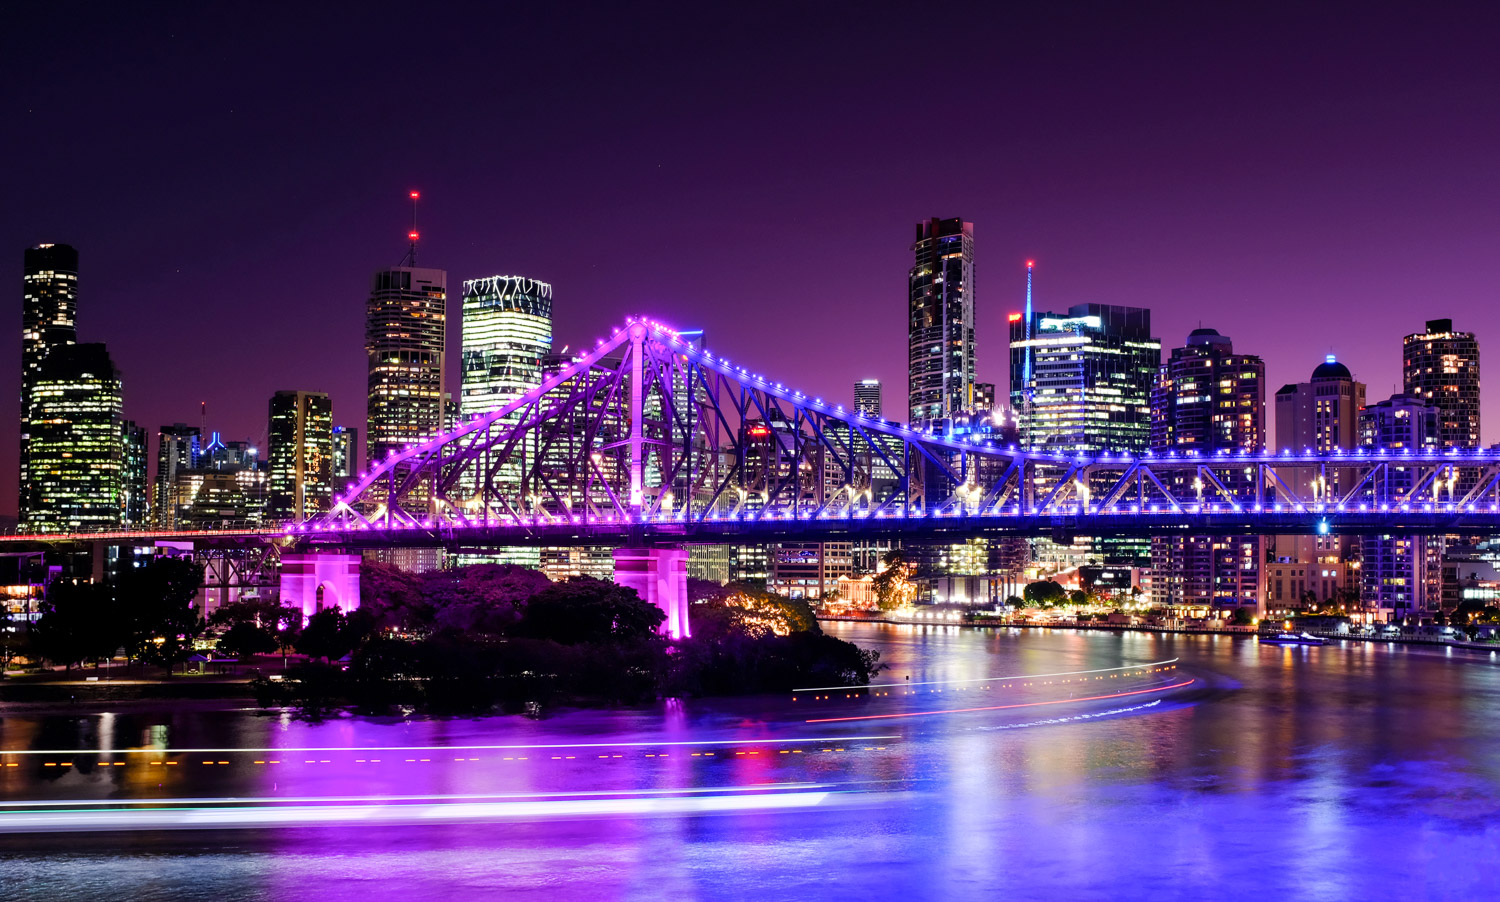 Brisbane at night by Matt Murray